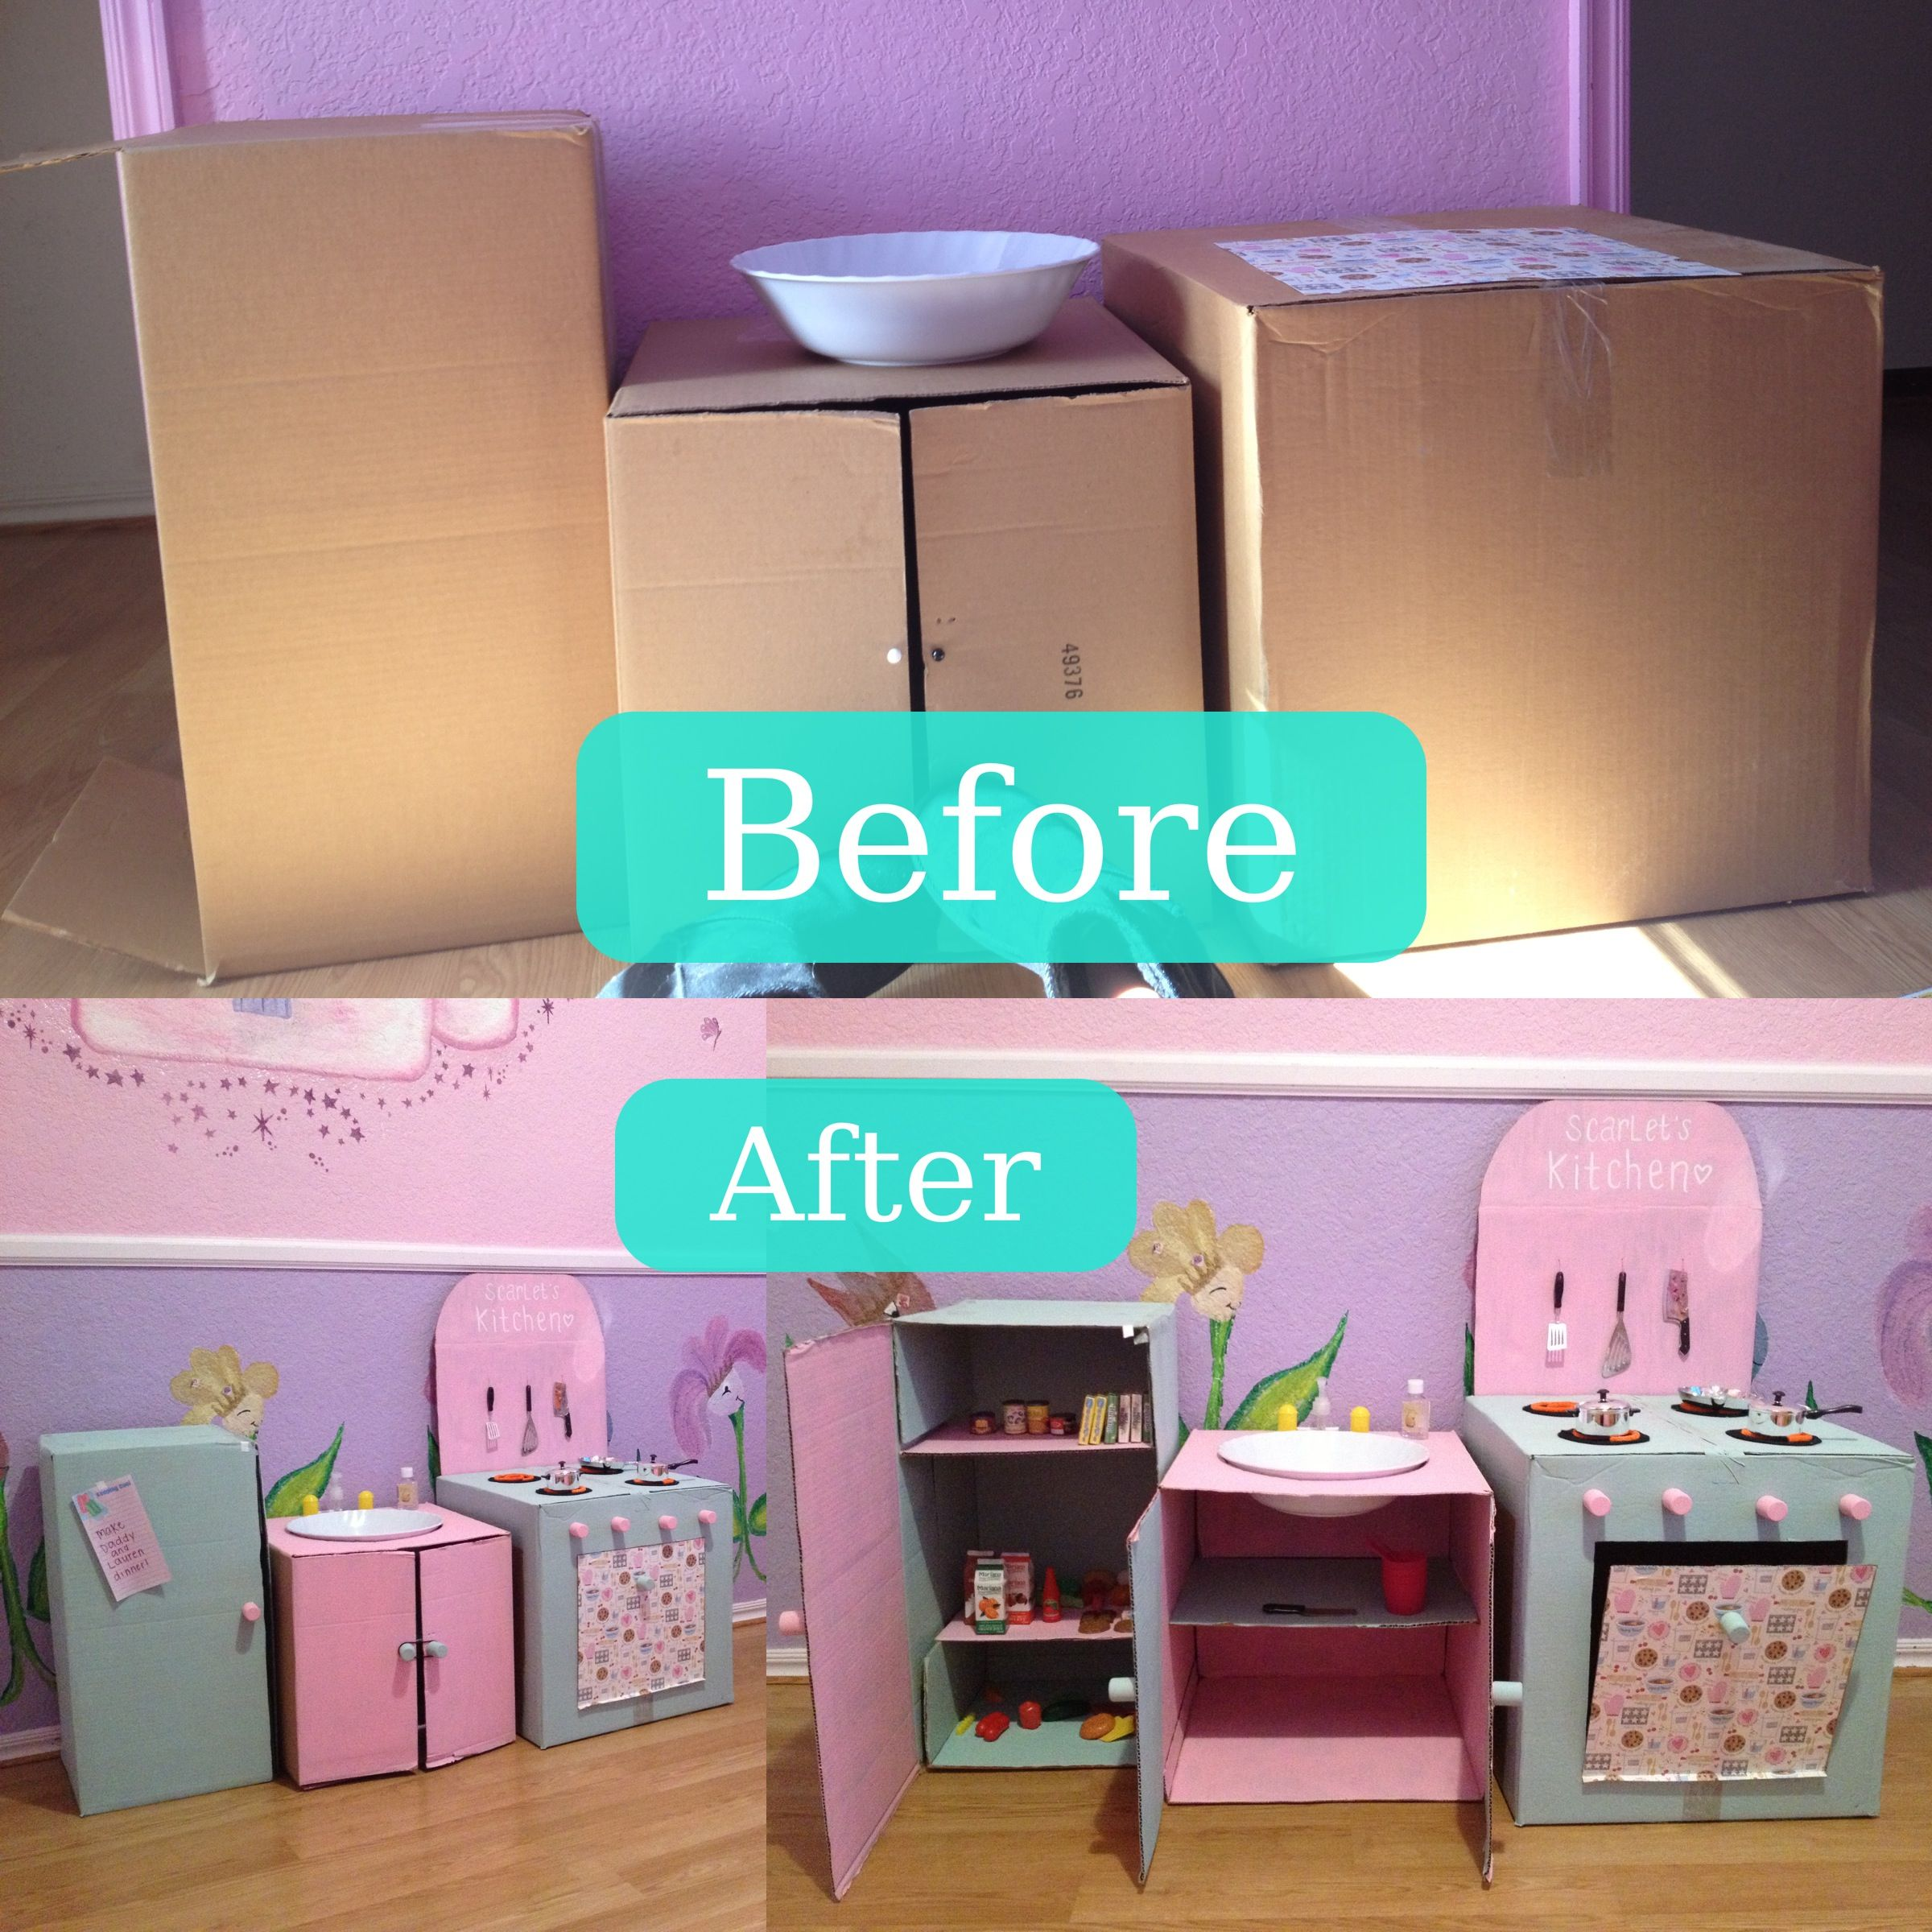 Turn extra cardboard boxes into a cute kitchen for your little chef ...